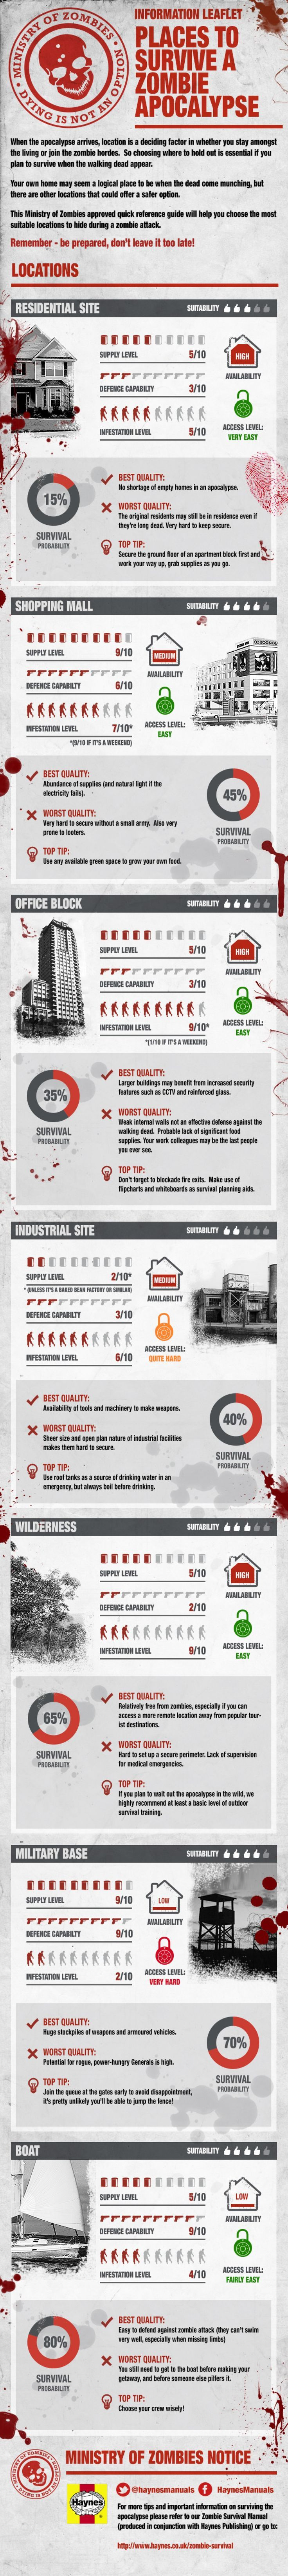 Places To Survive A Zombie Apocalypse #Survival #Preppers